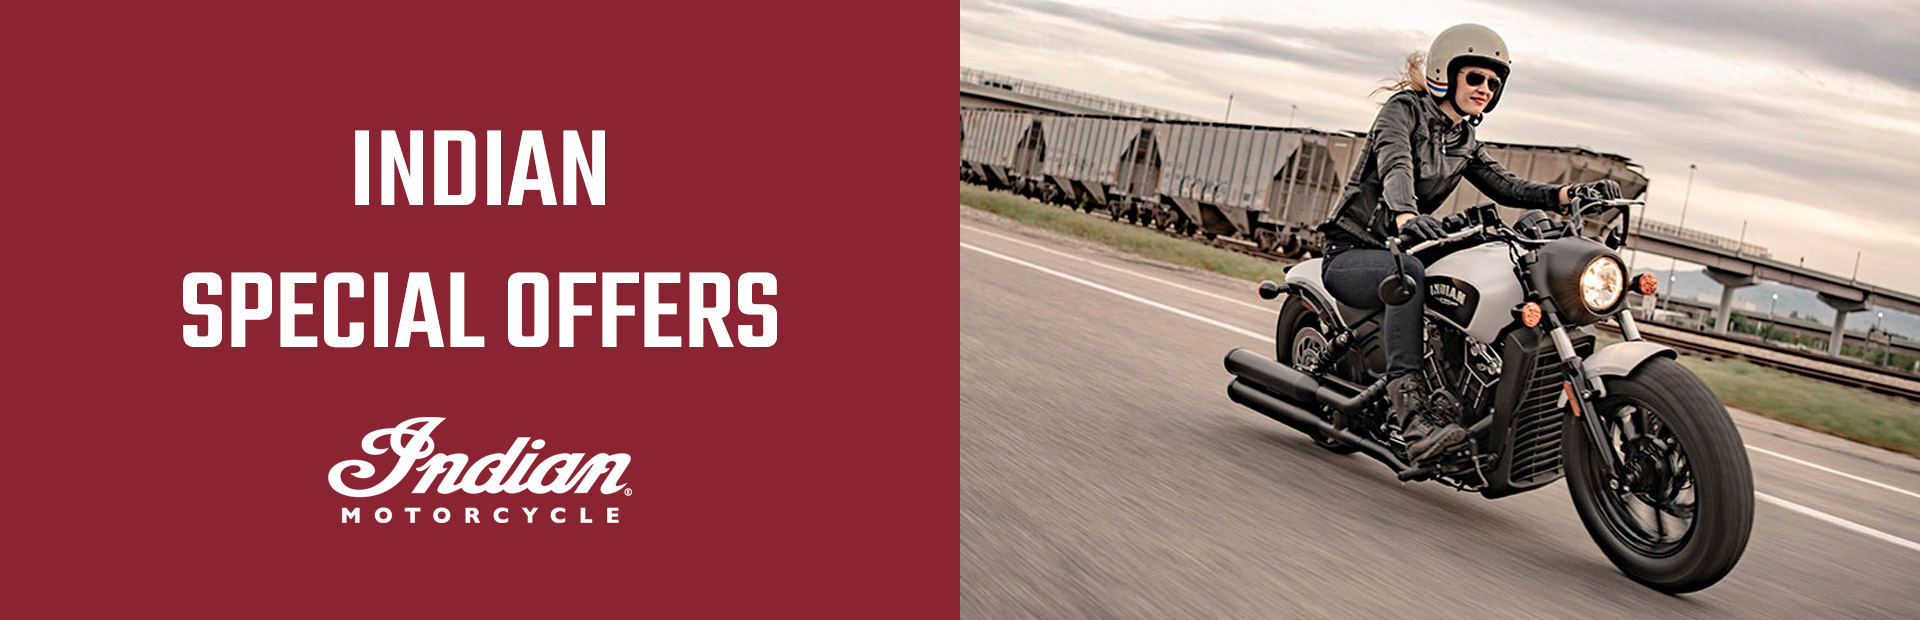 Indian Motorcycle: Indian Special Offers